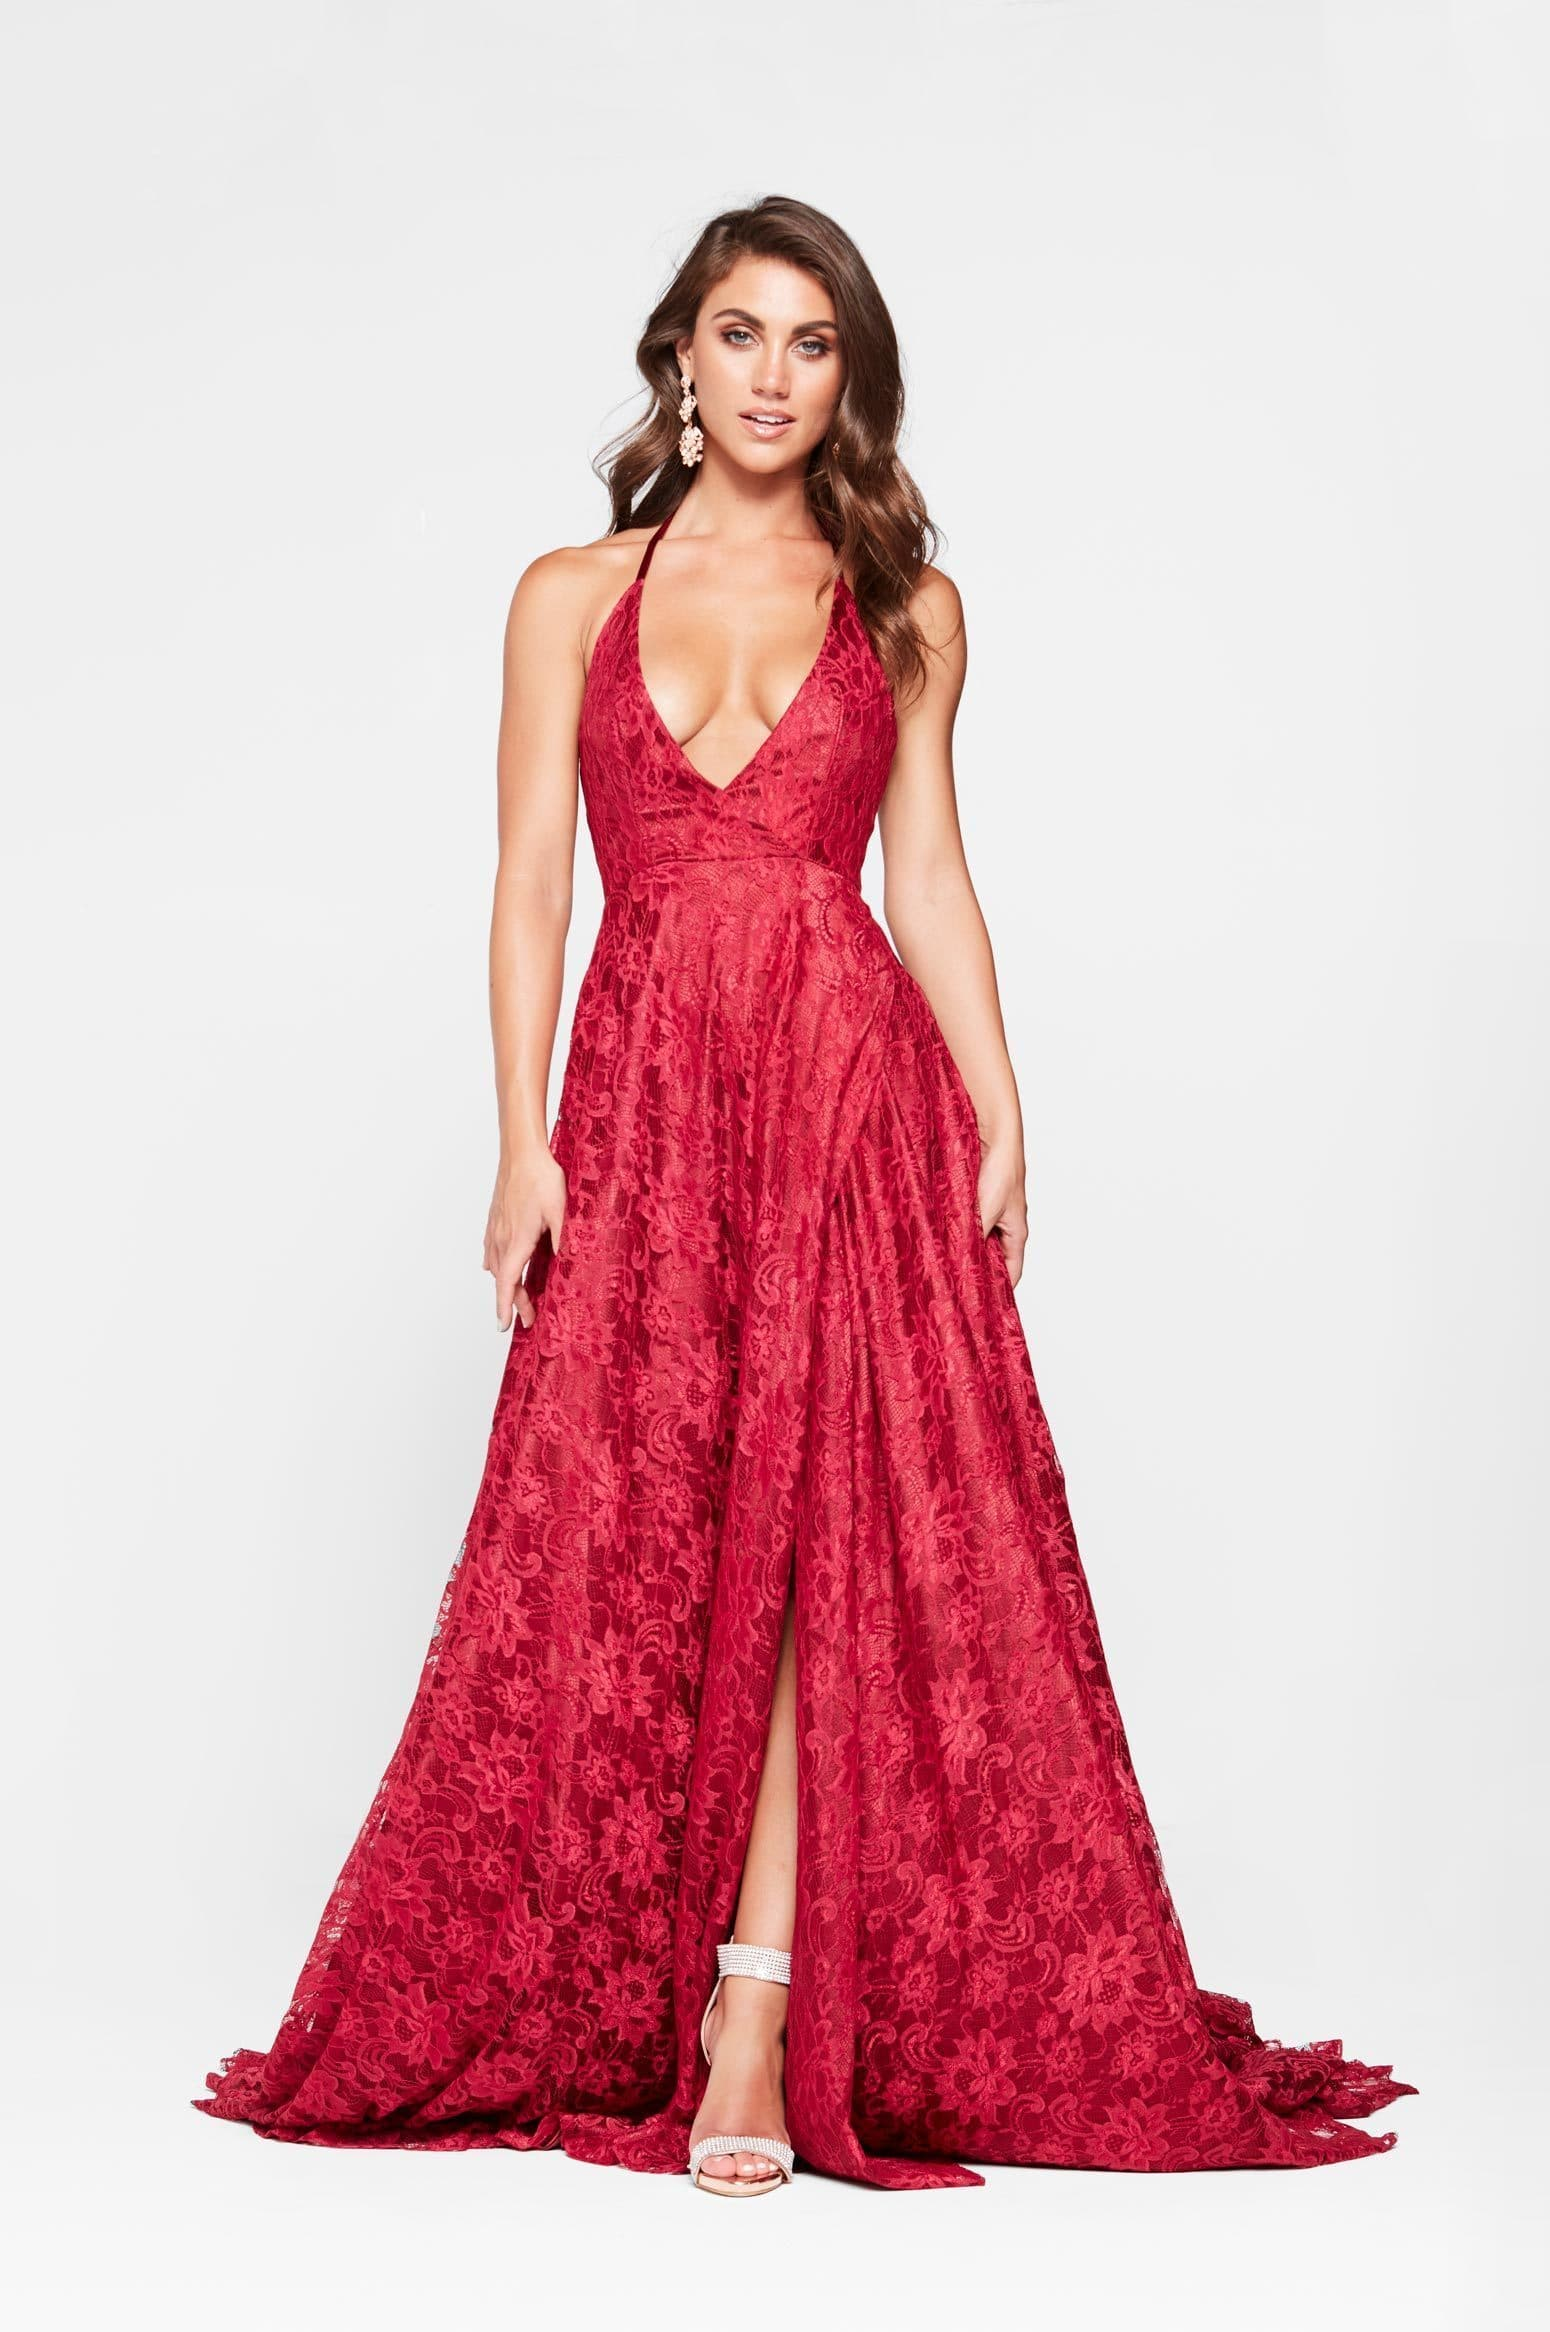 A&N Frida -Red Lace Formal Gown with Plunging Neckline and Low Back ...